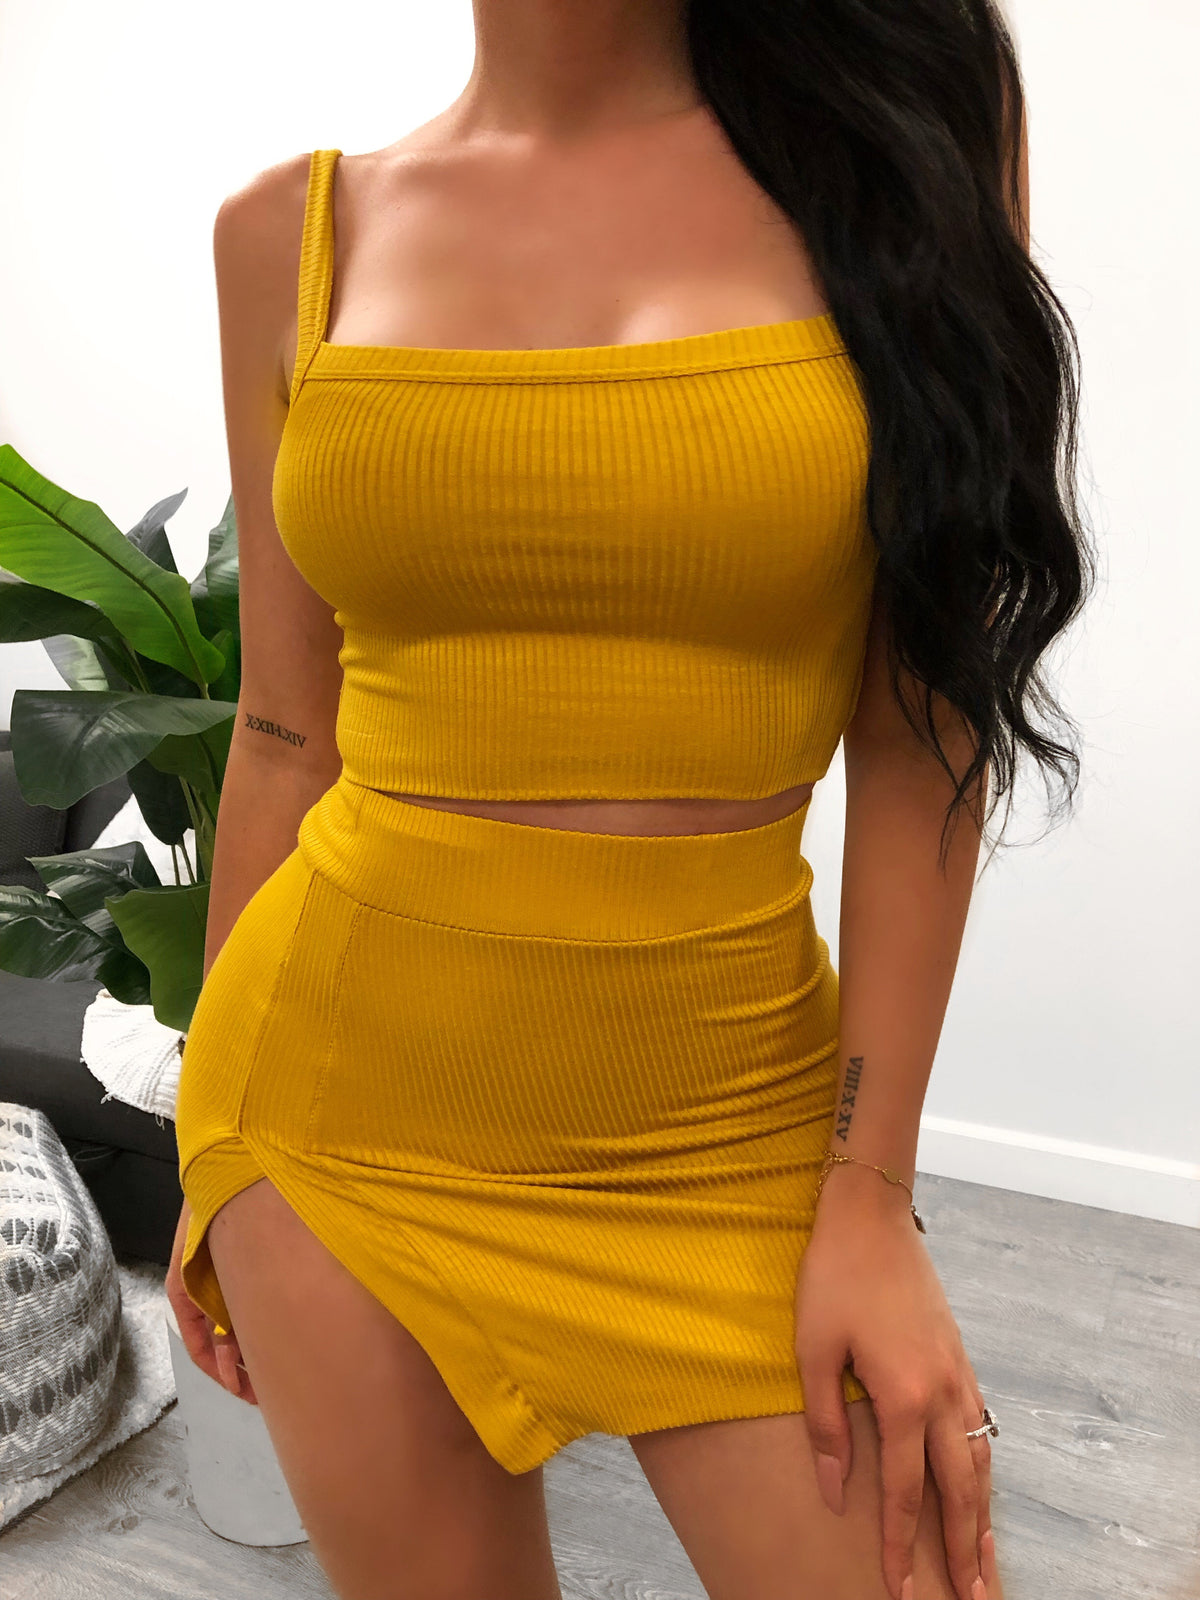 mustard yellow two piece set. cropped tank top.  non adjustable straps. shows no cleavage. short high waisted skirt. skirt has a slit on outer right side. above mid thigh length.